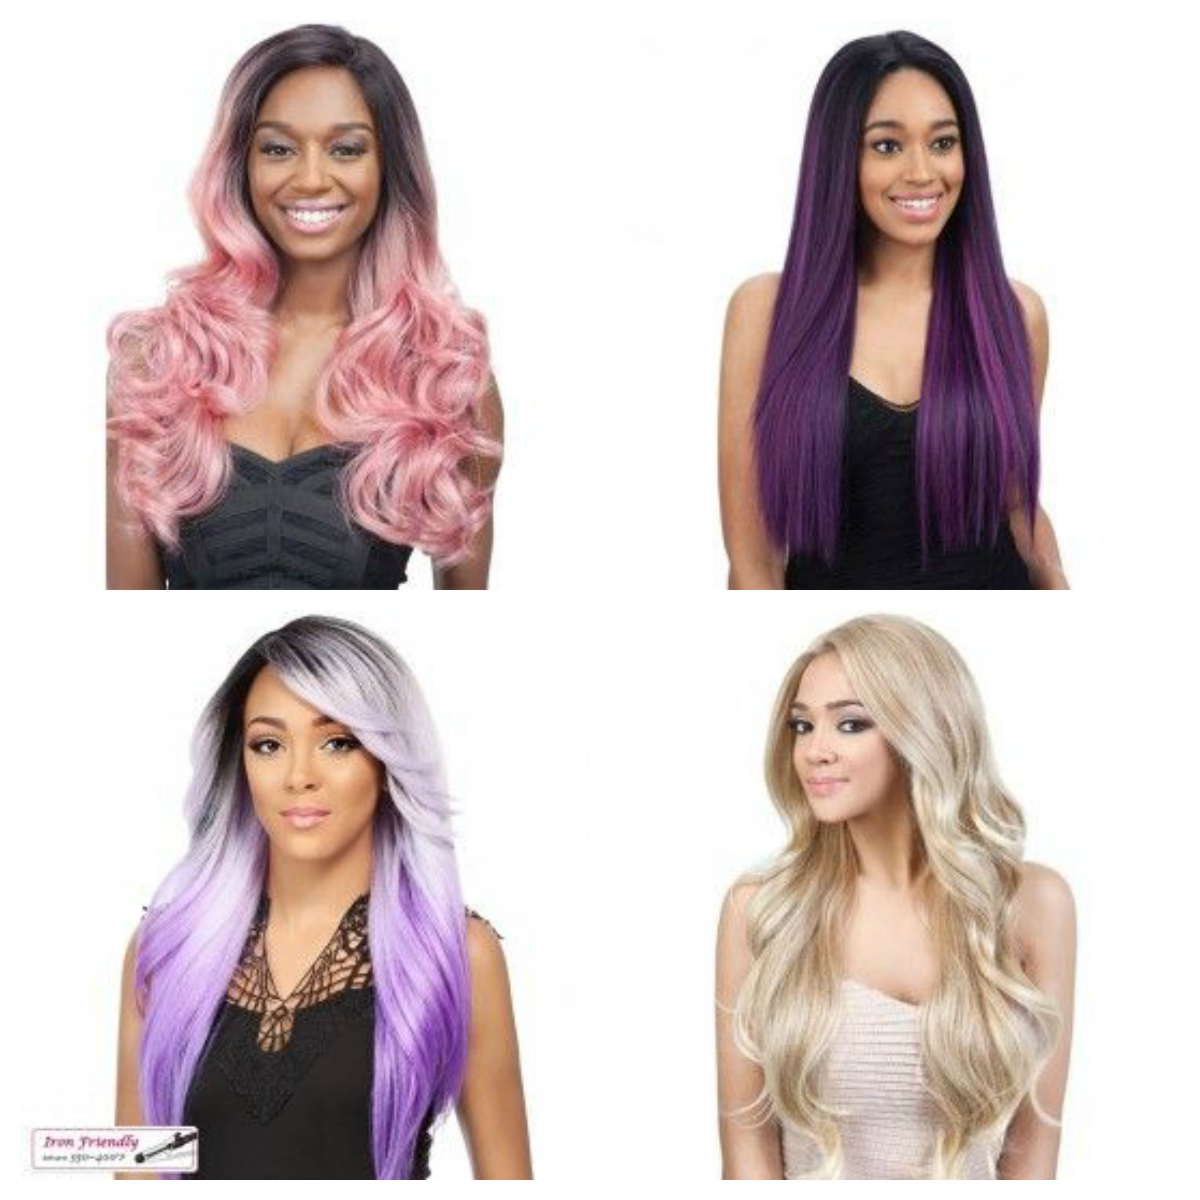 Change Up Your Hair With Divatress Lace Front Wigs Nik The Makeup